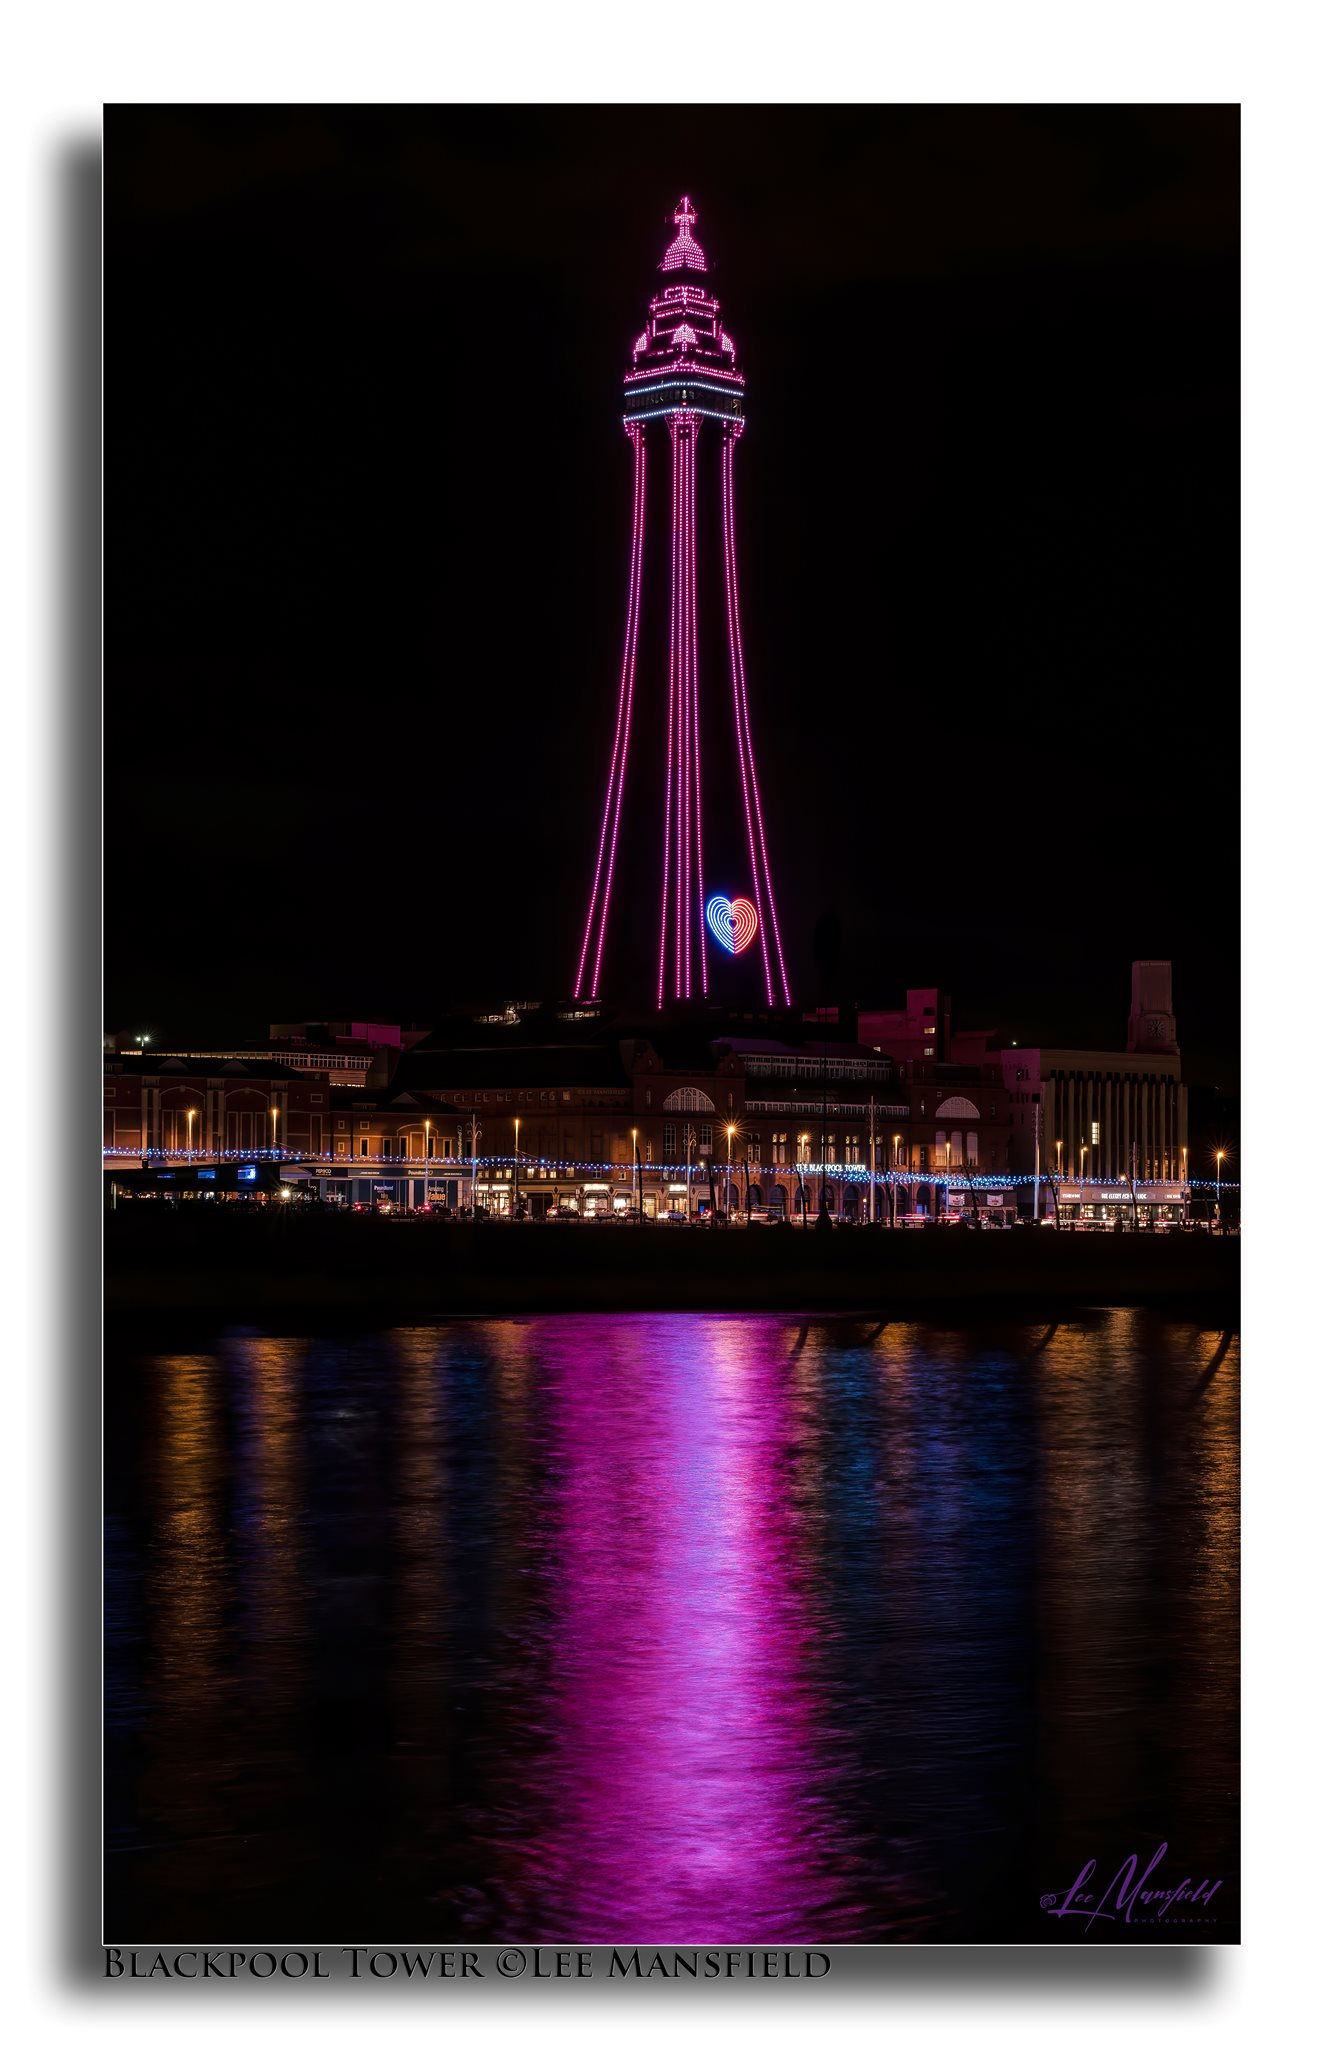 Blackpool Tower - lights fantastic